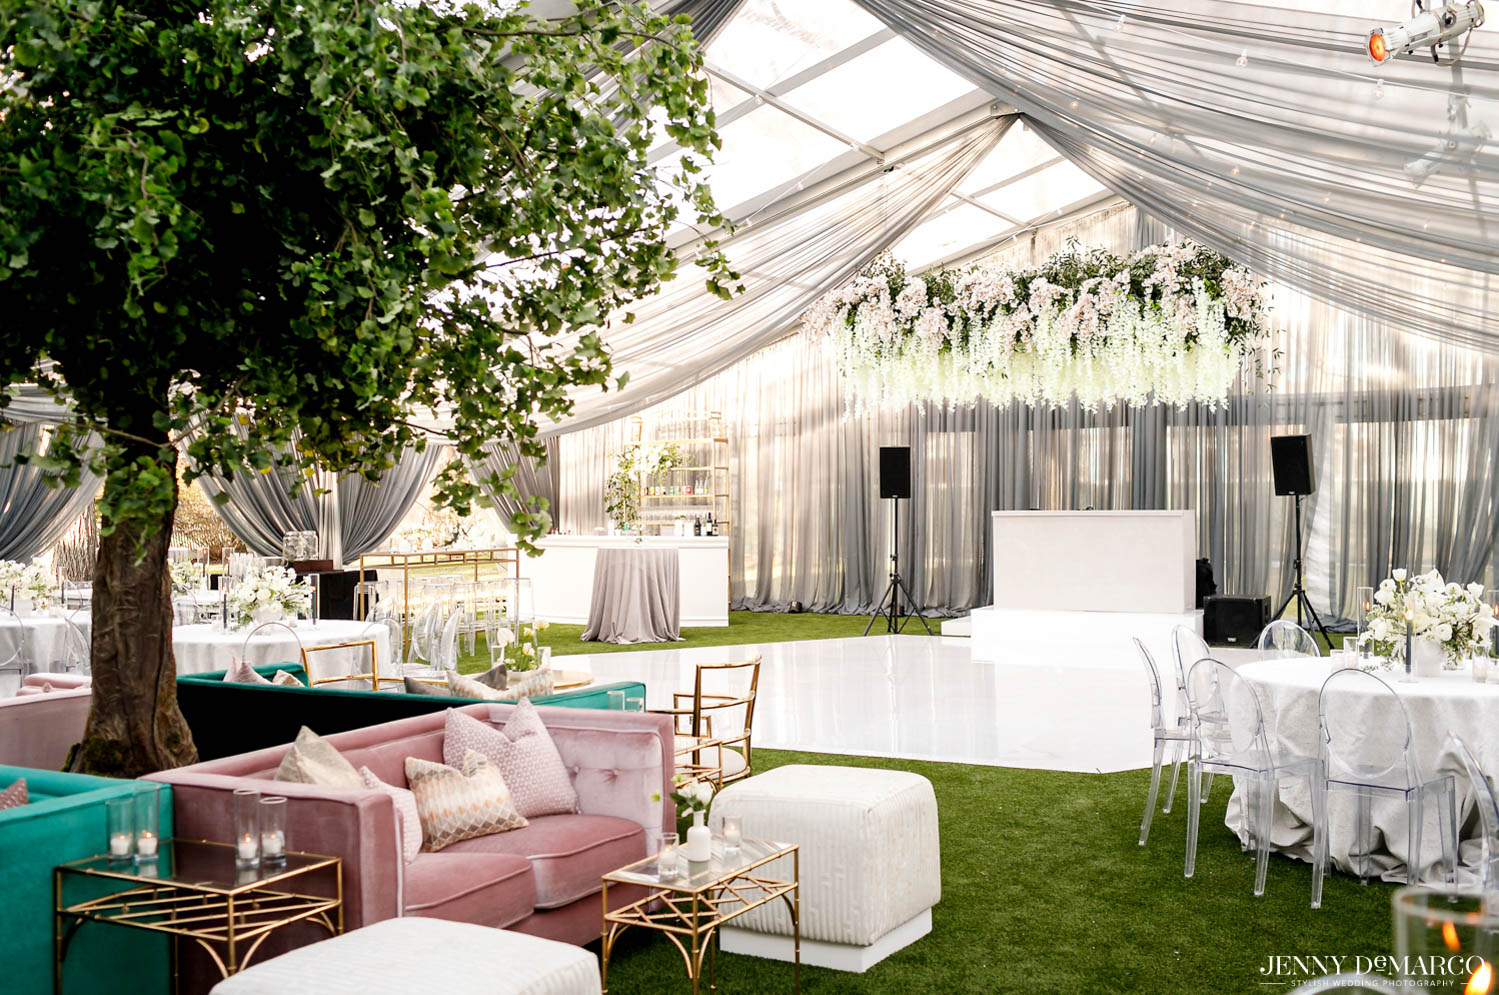 wedding reception tent with large hanging floral arrangement over dance floor and white decorated tables